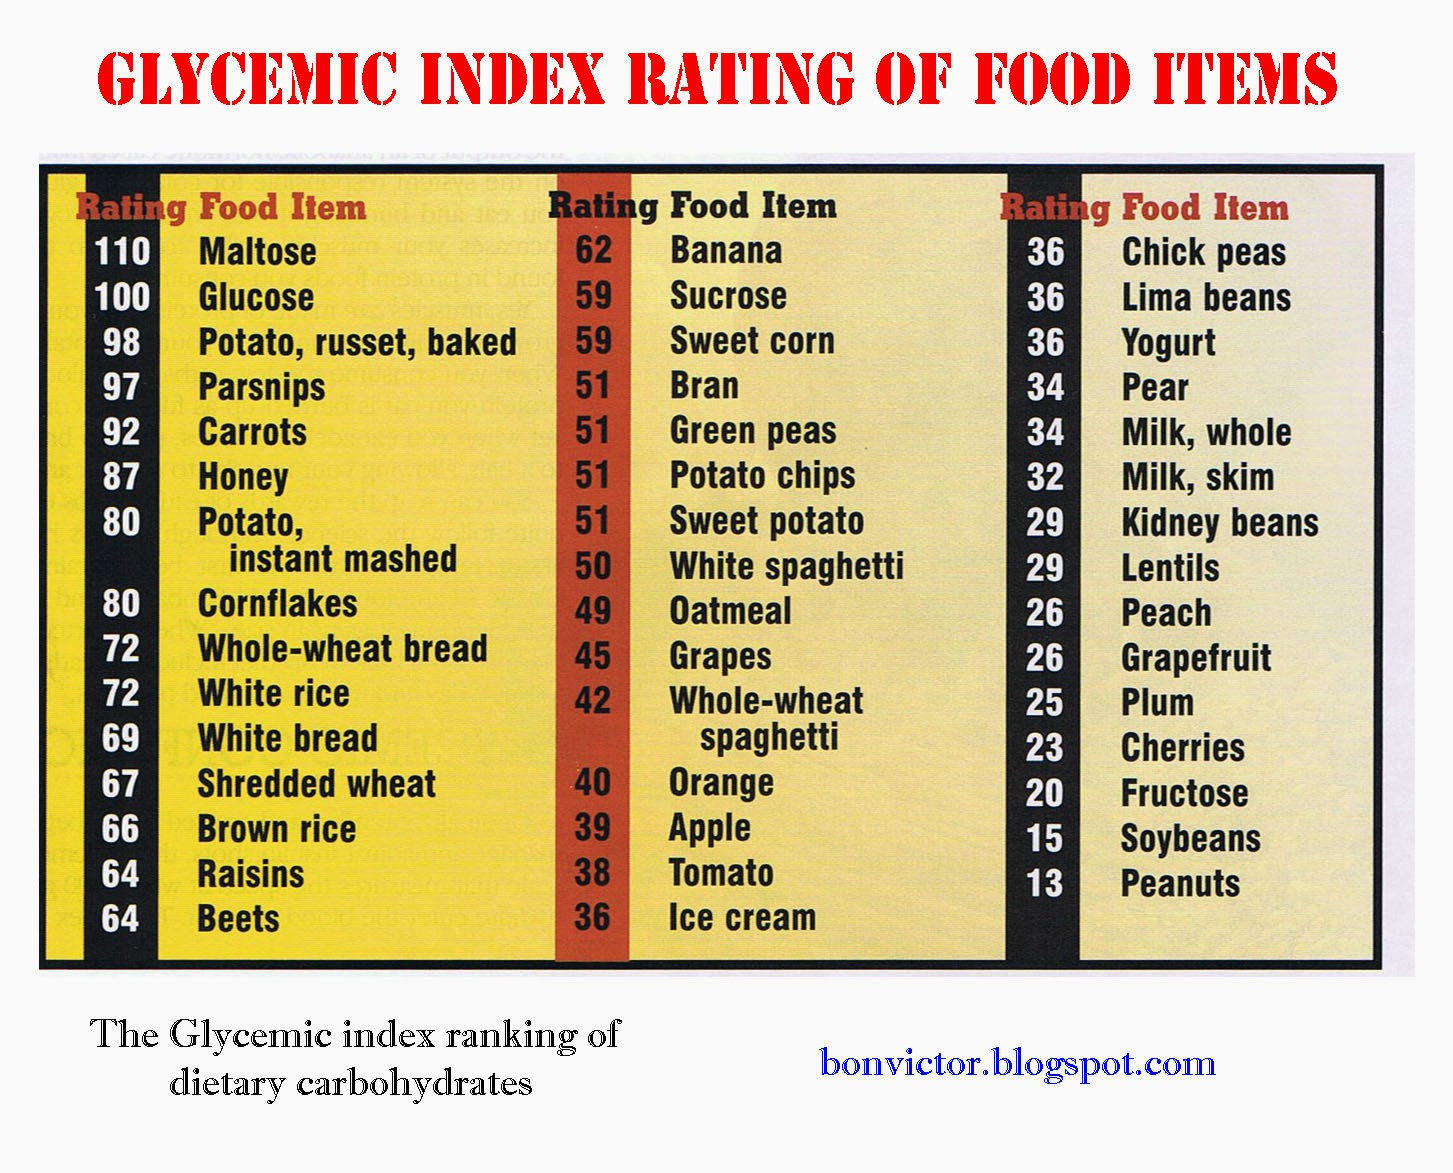 bonvictor.blogspot.com: The Glycemic Index ranking of ...